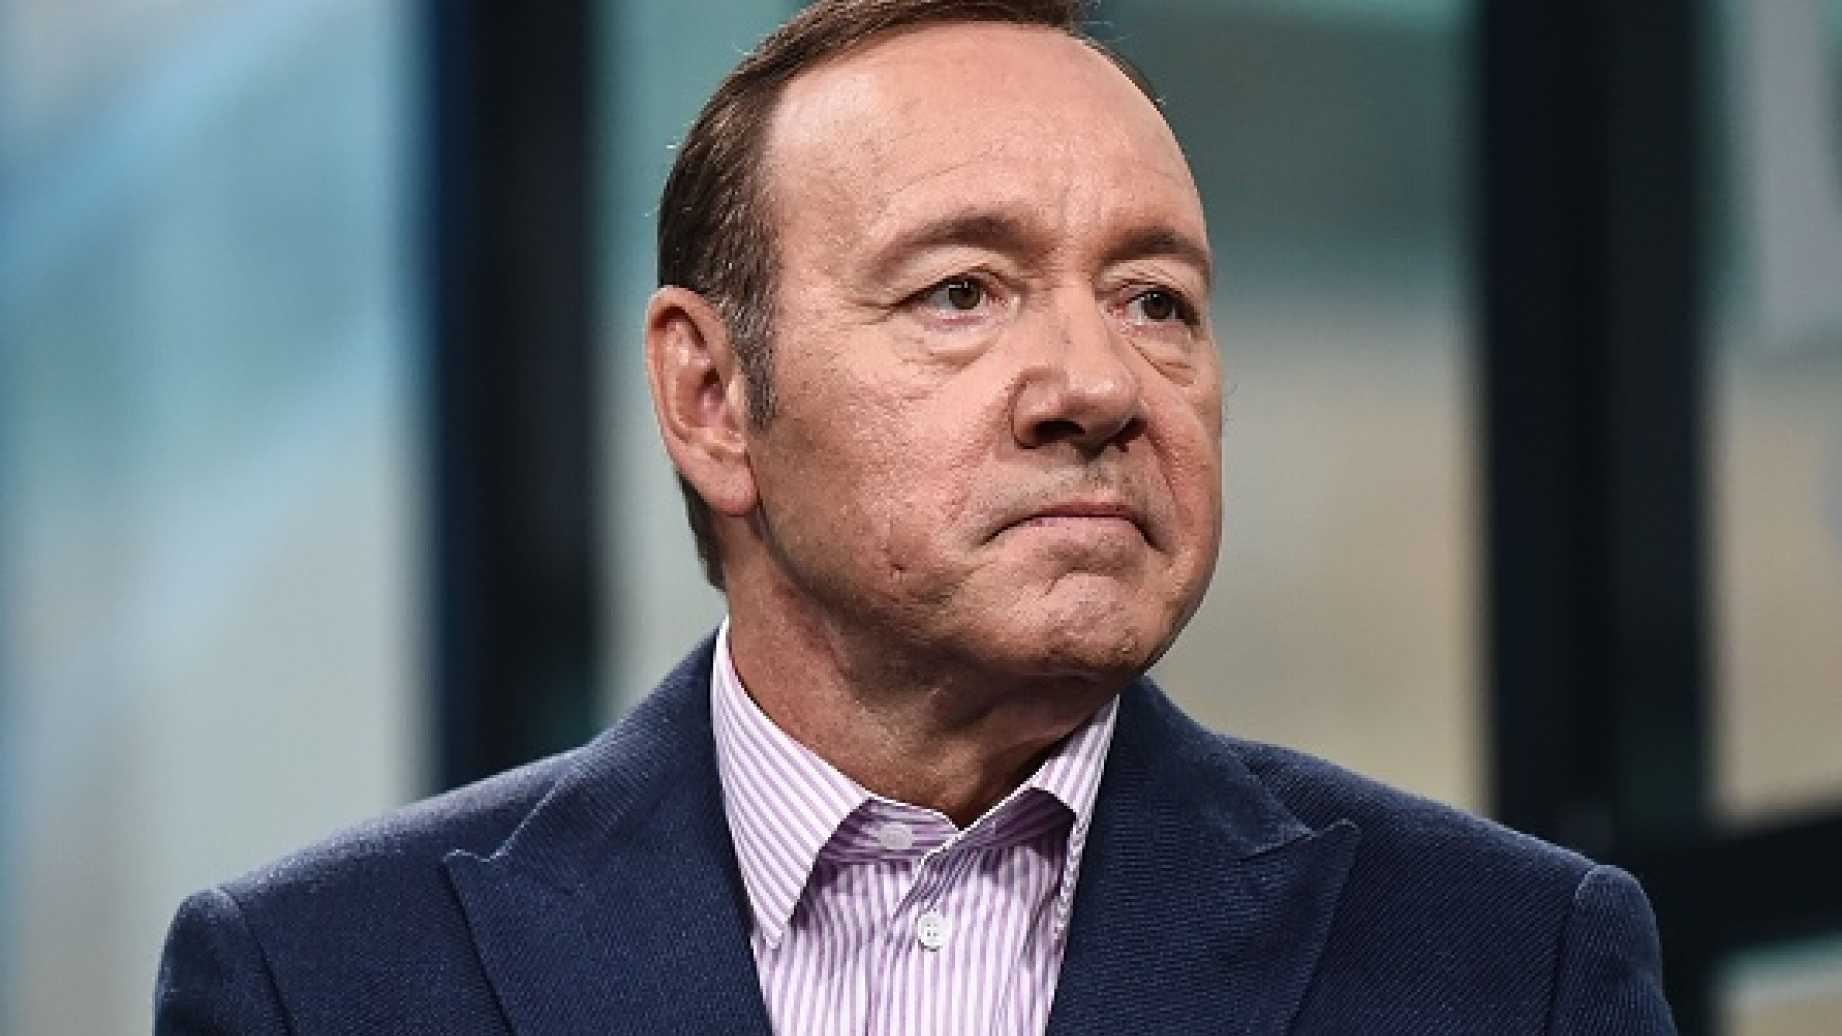 Academy Award Holder Kevin Spacey charged with felony